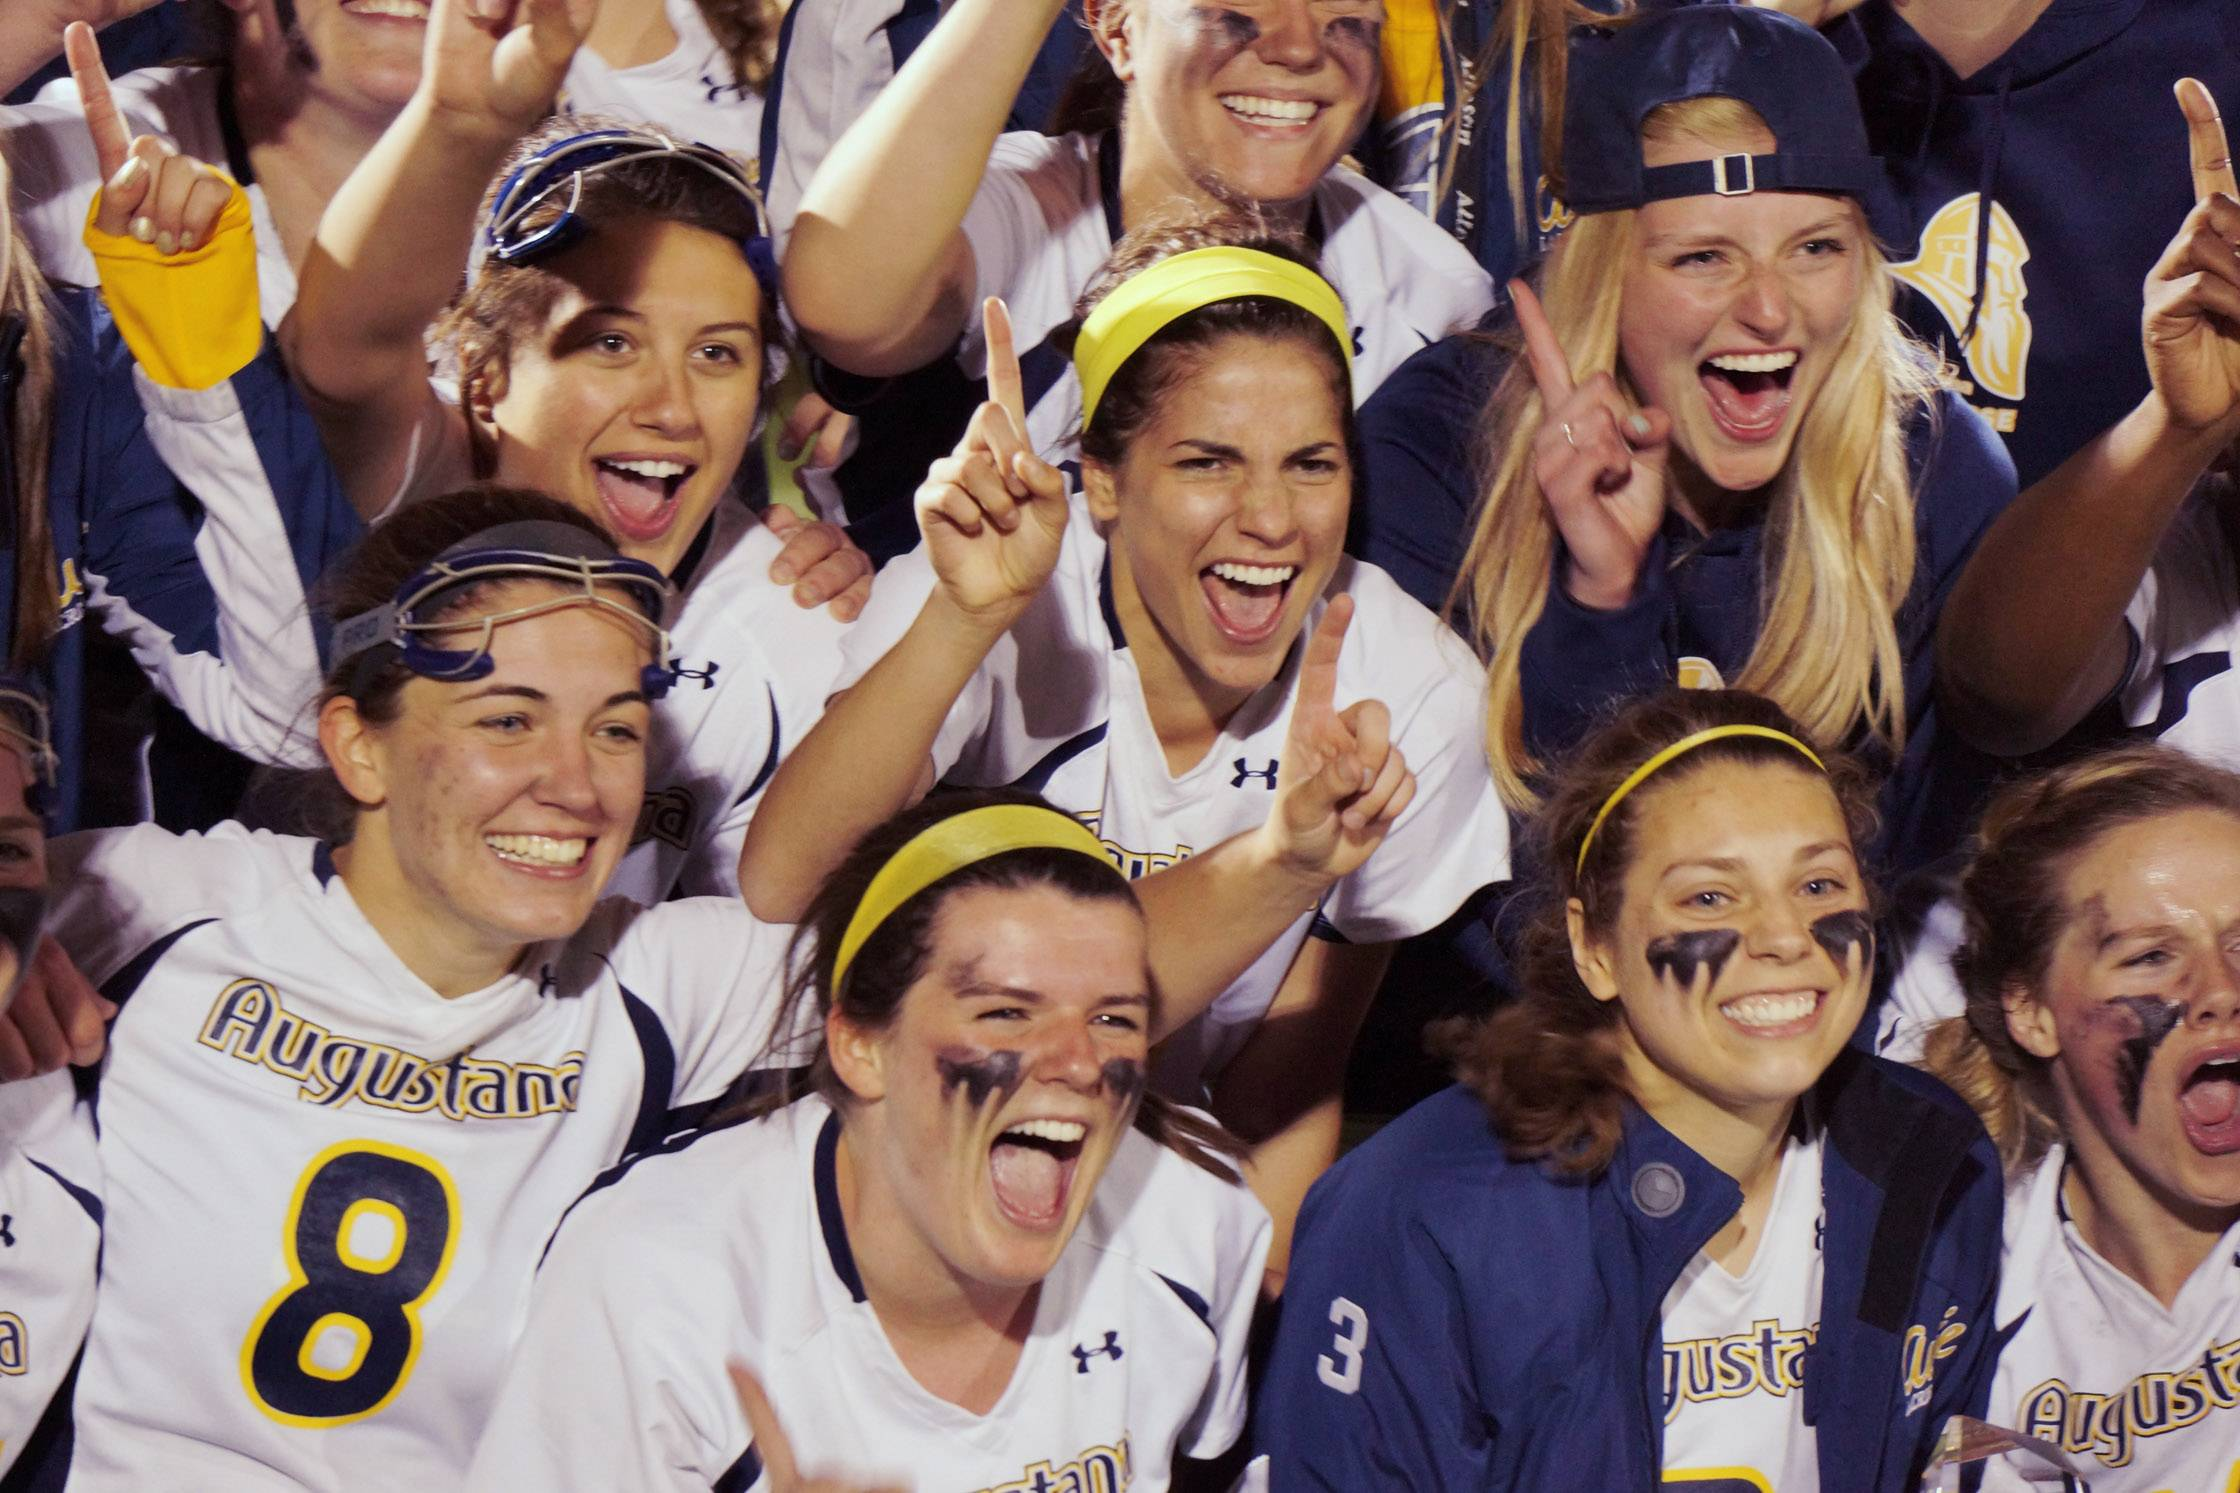 Augustana College Women's Lacrosse Team celebrates a 19-0 record with a  win over Adrian to advance to the third round of the NCAA D111 tournament against Salisbury College in Maryland.